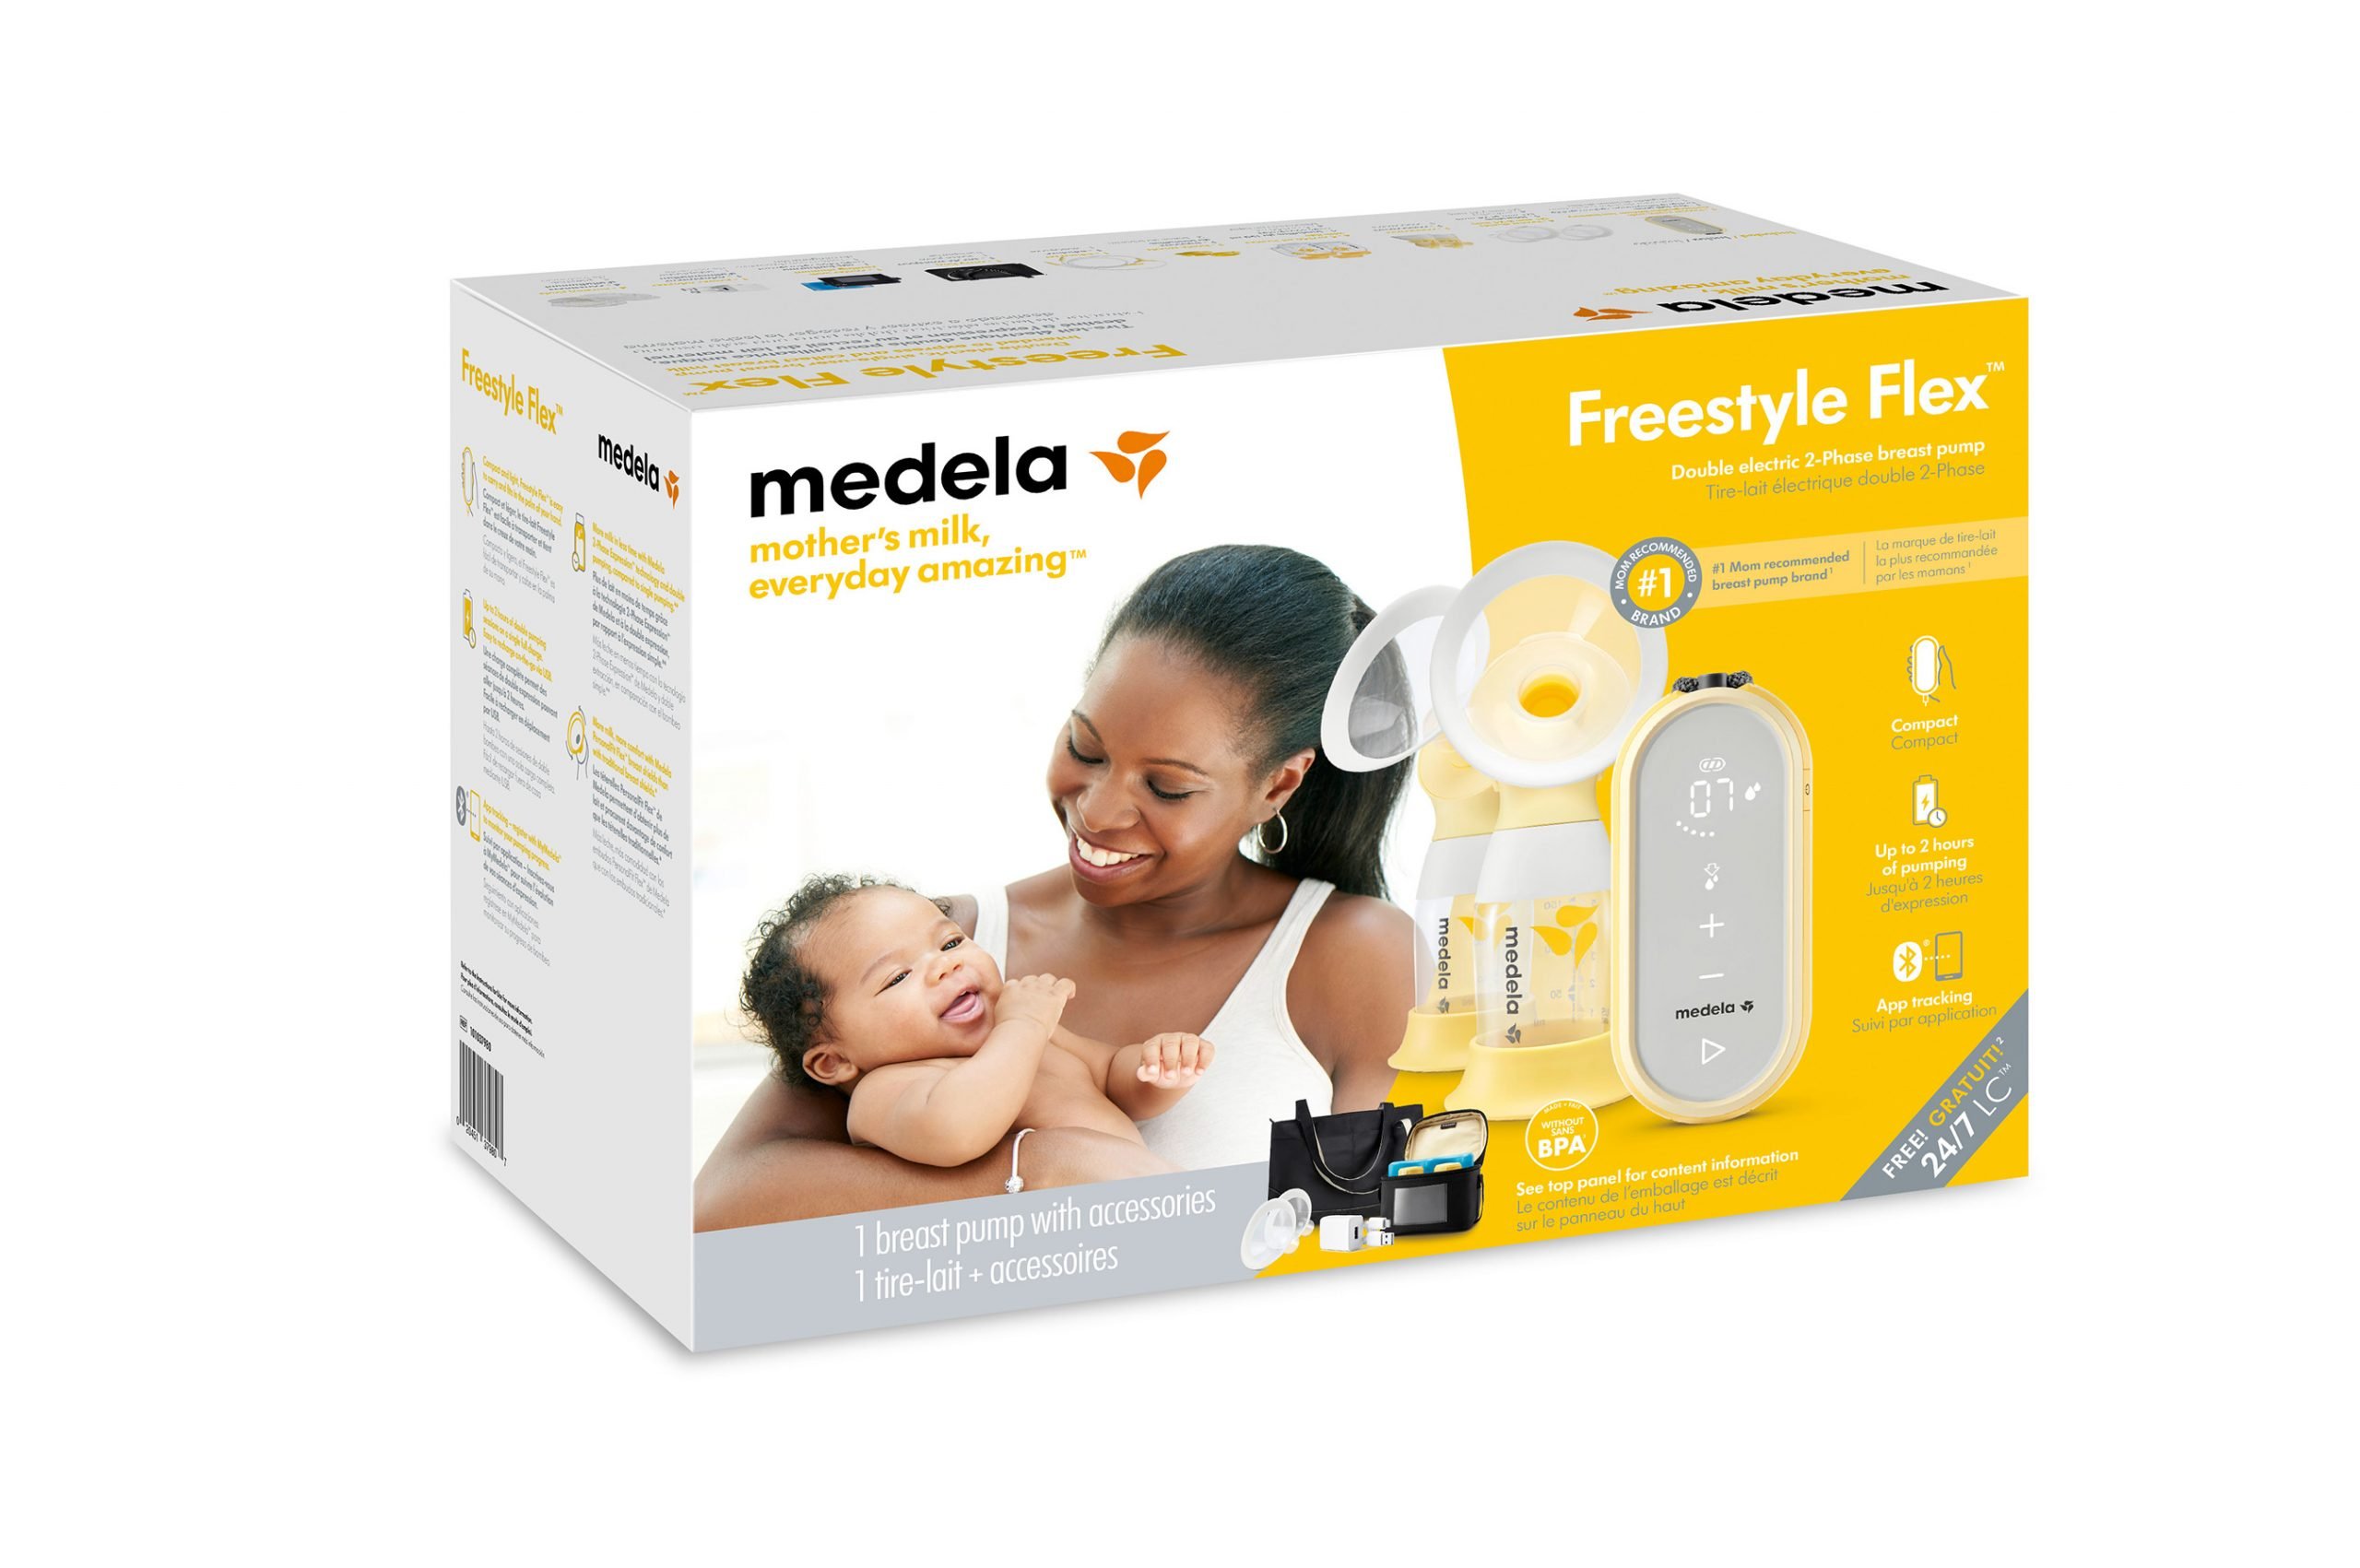 Medela Fresstyle Flex Breast Pump Box